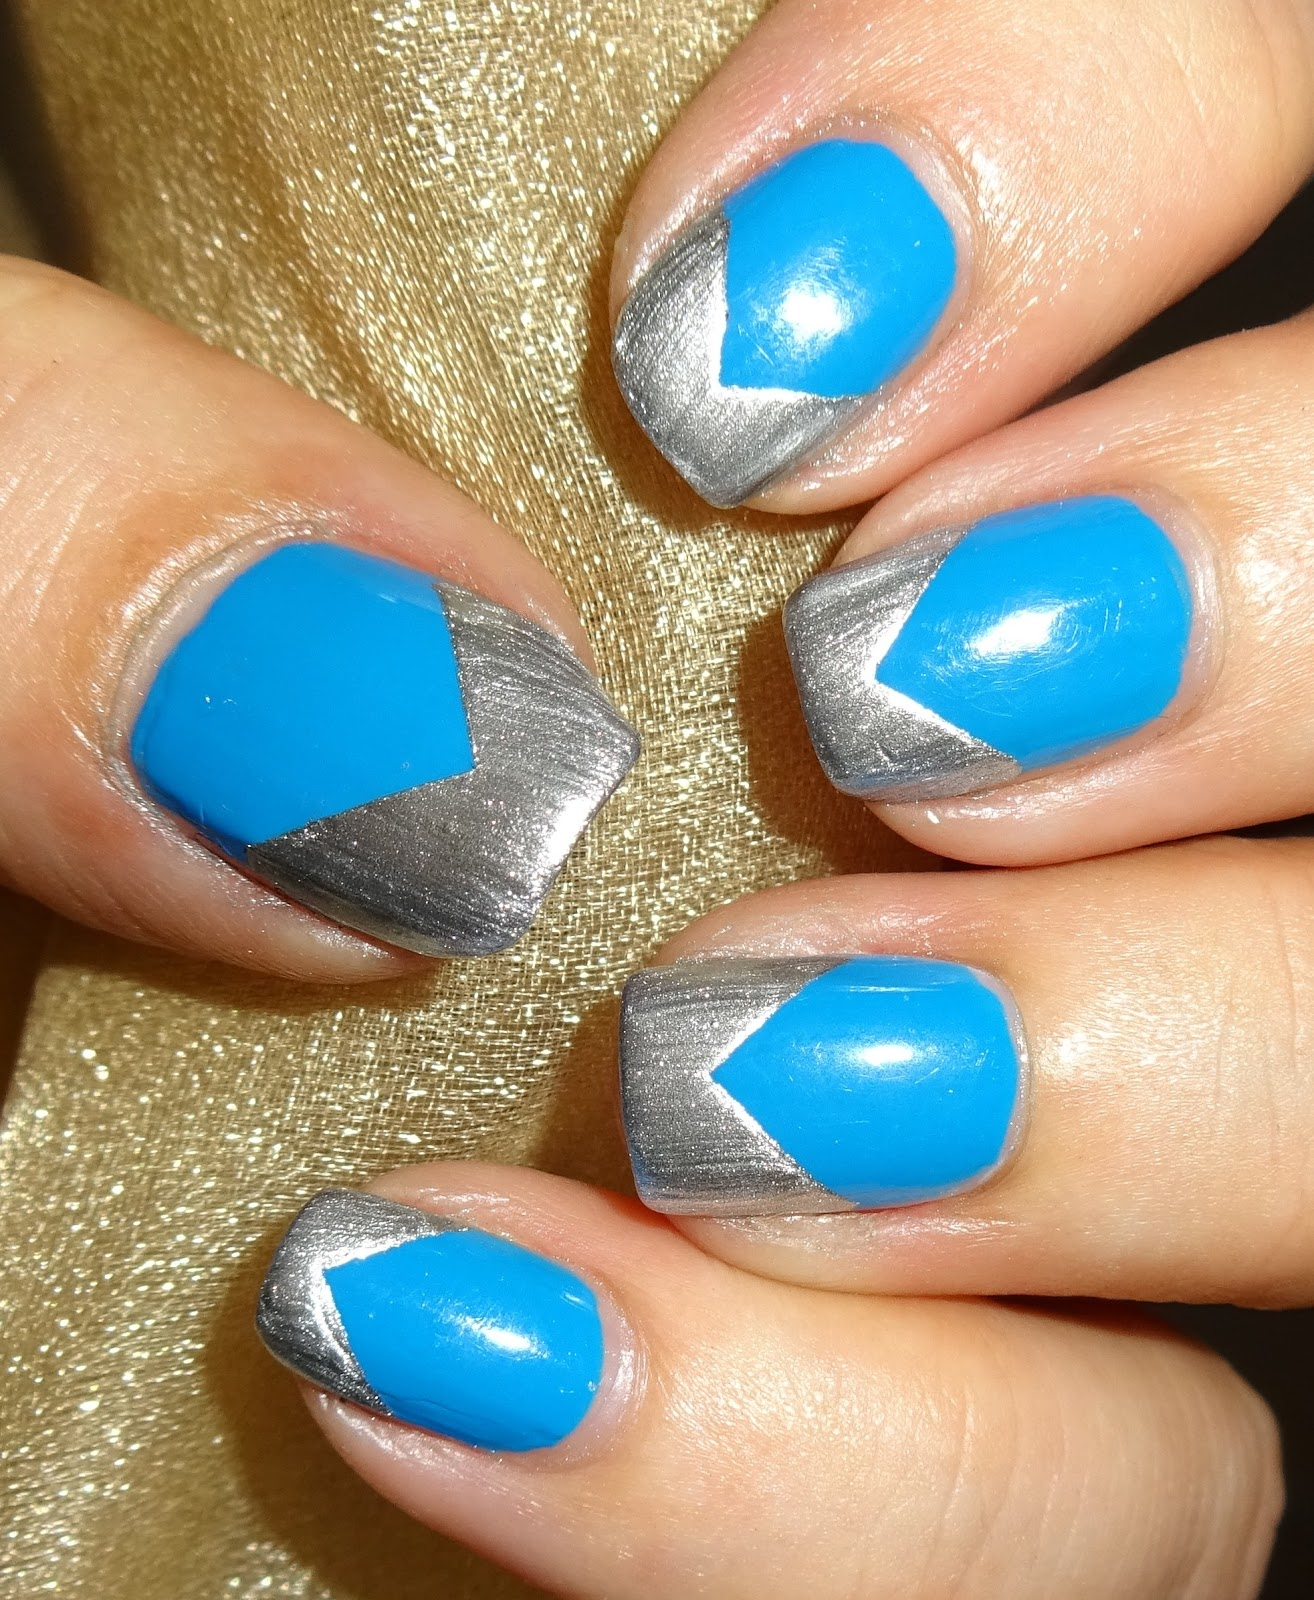 7 Tips For Ocean Chlorine Proofing Your Manicure Nail: Wendy's Delights: Blue & Silver Nails Using Avon Just